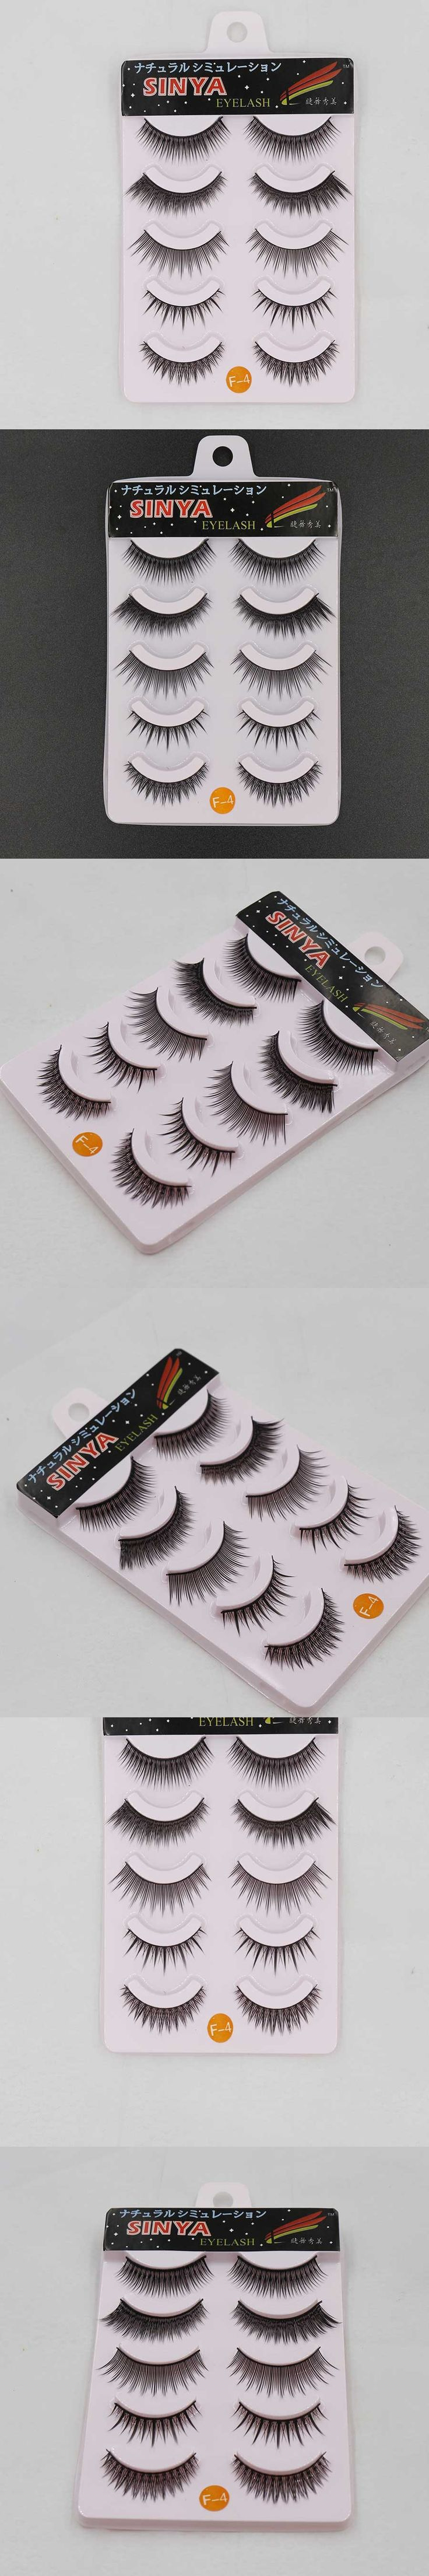 10 Pairs Crisscross Thick Tapered 3D Mink Eyelashes Extension Eye Lashes Cilios Posticos Naturais Faux Cils Nep Wimpers F-4x2